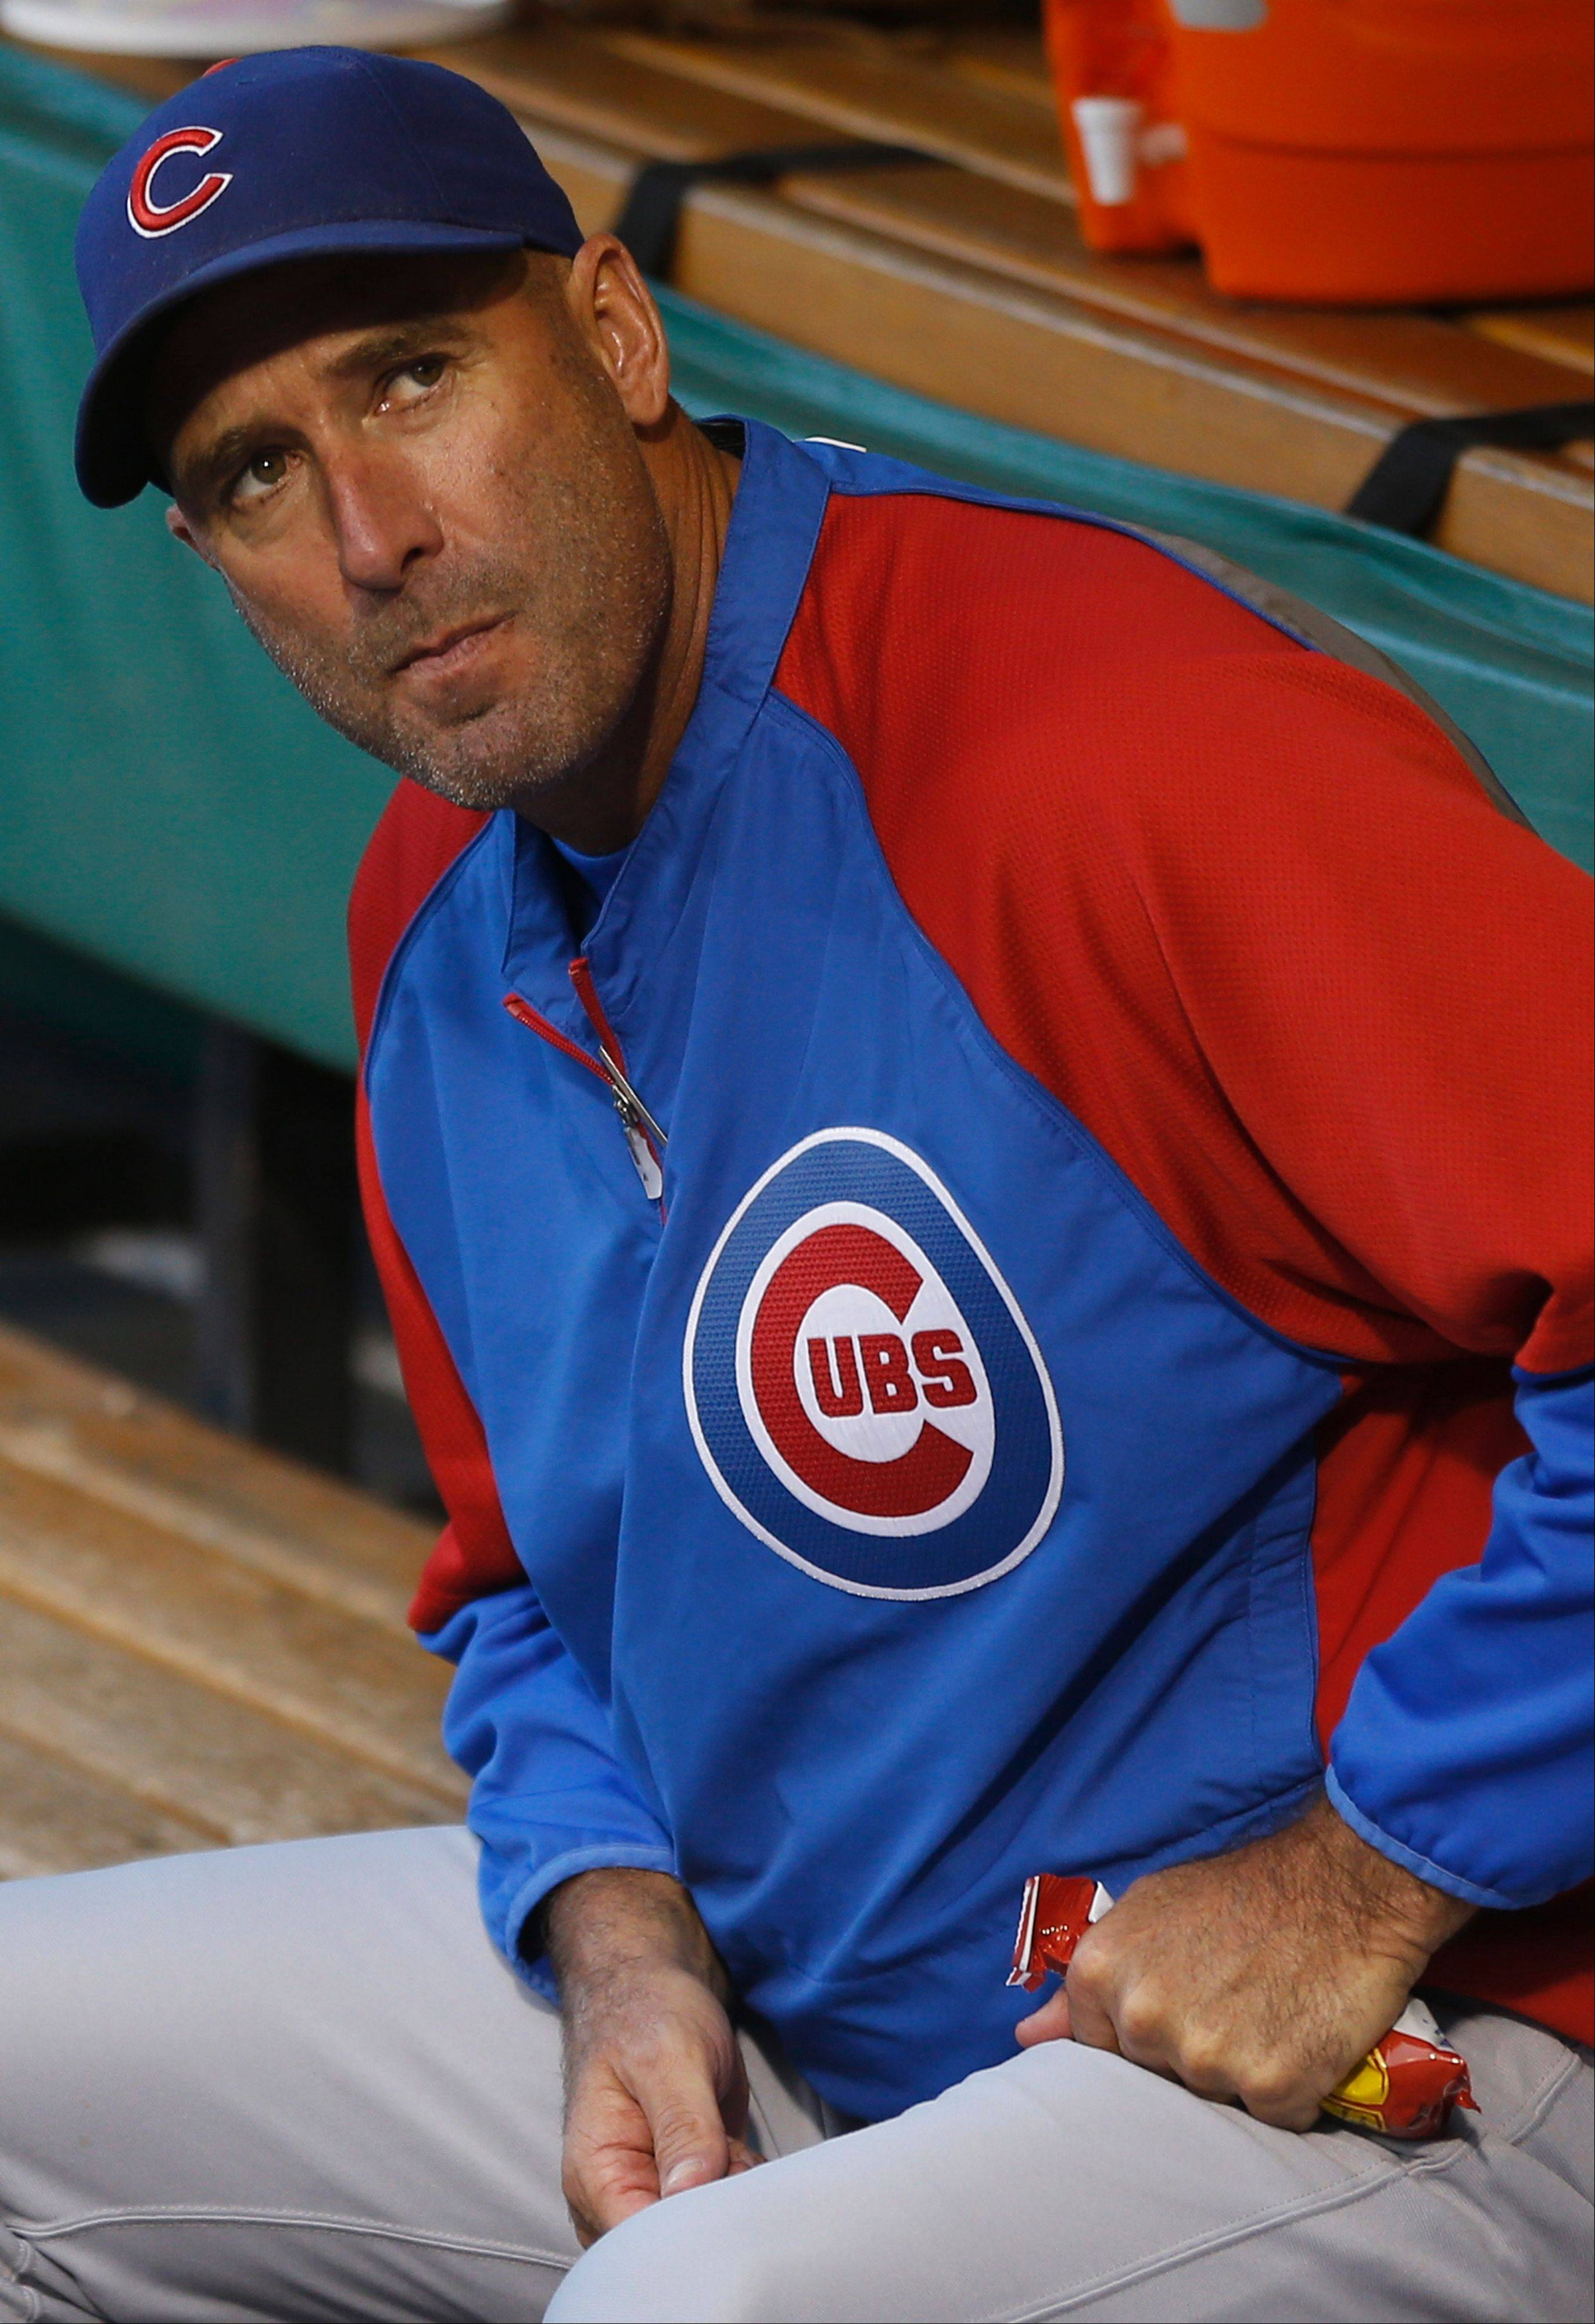 Chicago Cubs manager Dale Sveum looks from the dugout before the baseball game against the Pittsburgh Pirates on Friday, Sept. 13, 2013, in Pittsburgh. The Cubs won 5-4.